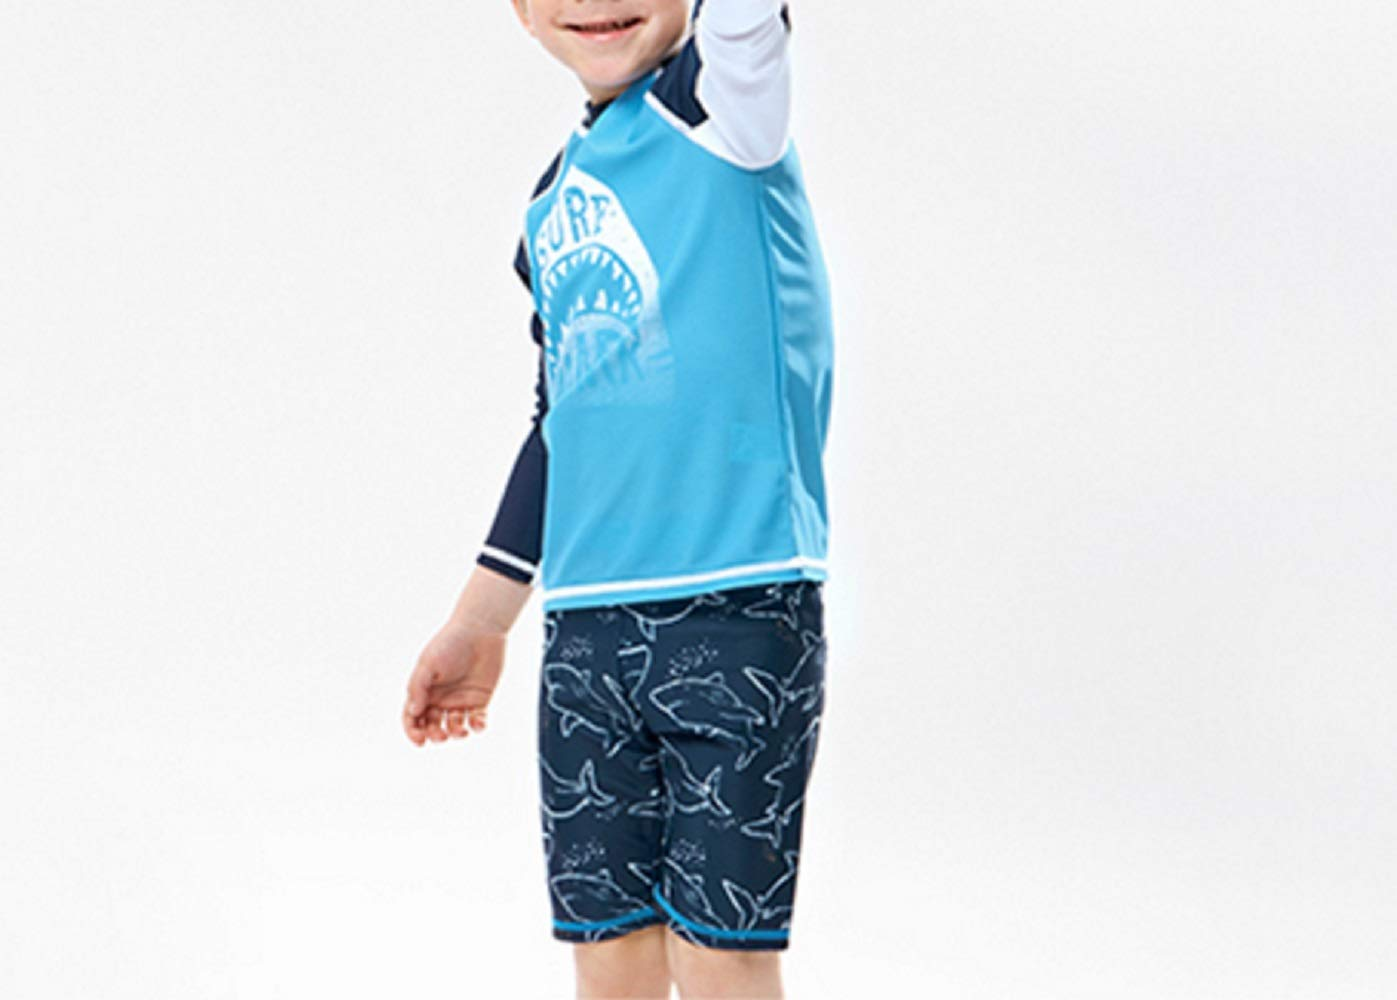 Pullic Kids Children Long Sleeve Split Swimsuits Kids Sunscreen Letter Printing Wetsuit for Water Sports(Blue) by Pullic (Image #2)